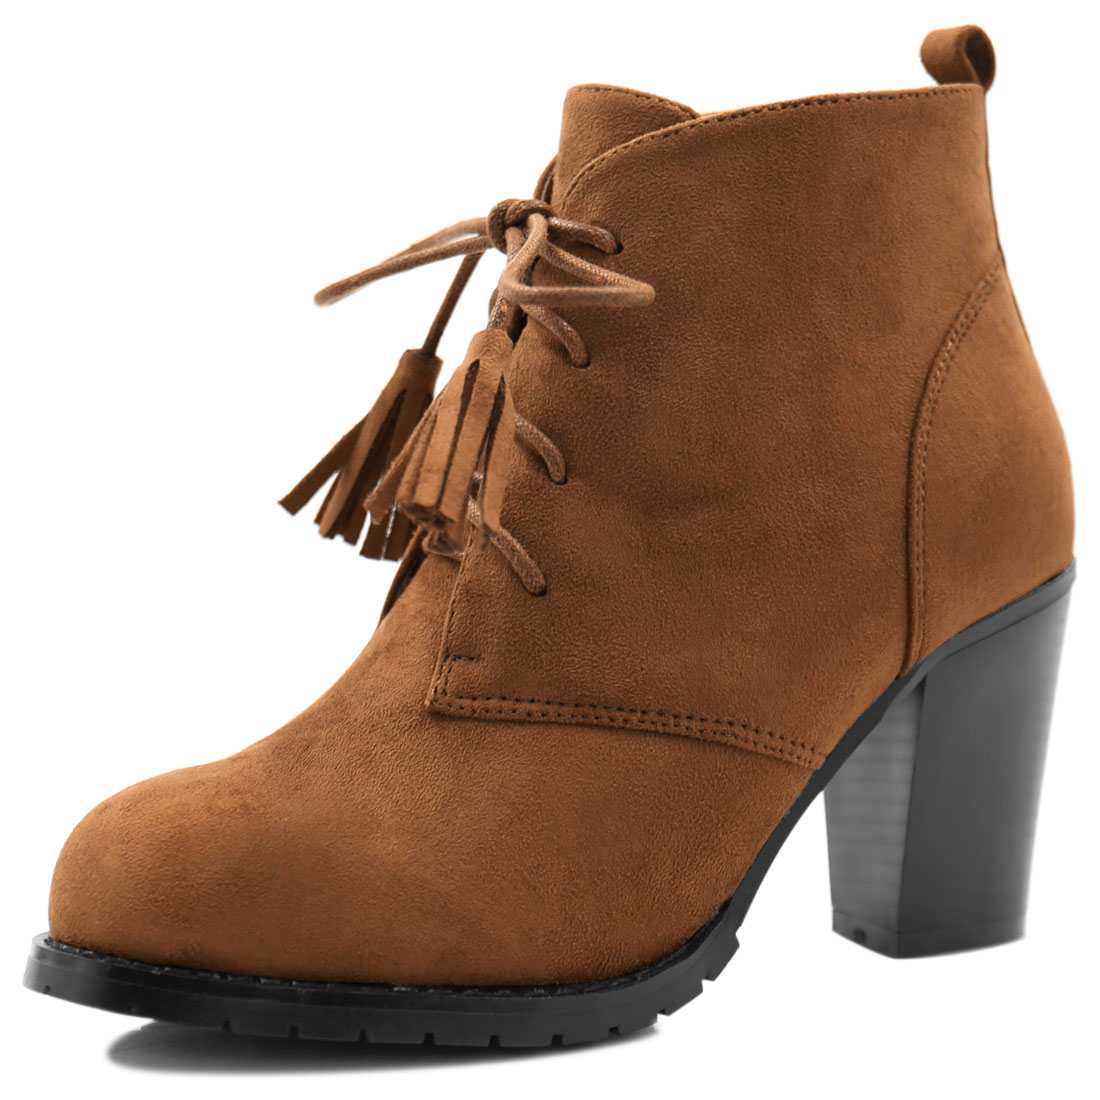 Women Rounded Toe Block Heel Tassel Lace-Up Ankle Booties Camel US 6